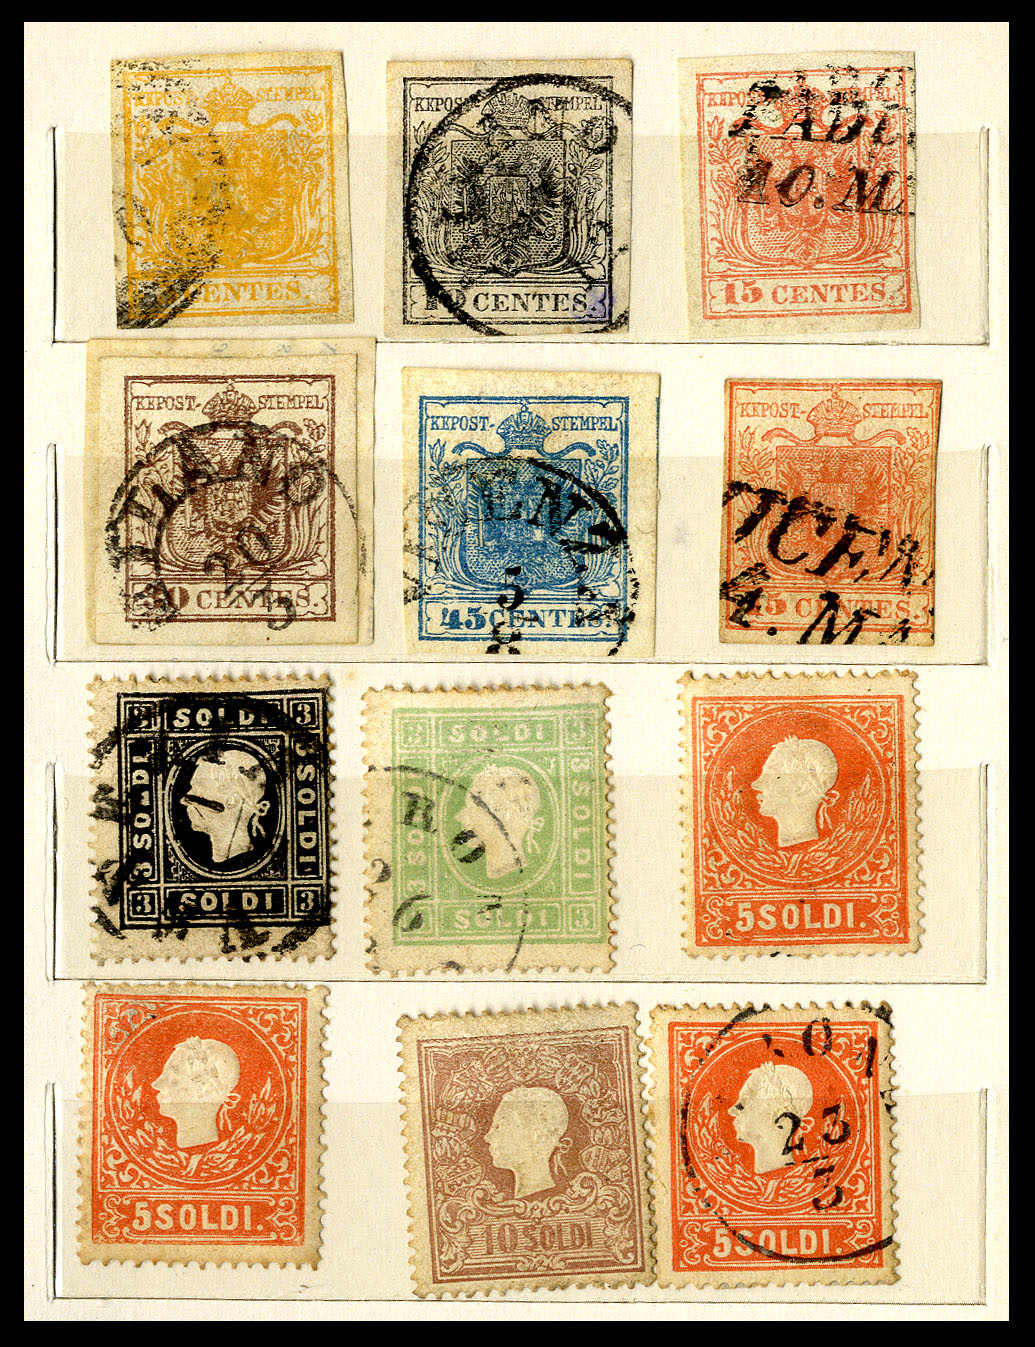 Lot 1269 - Lots and Collections collections and lots italian states -  Viennafil Auktionen 63rd LIVE AUCTION